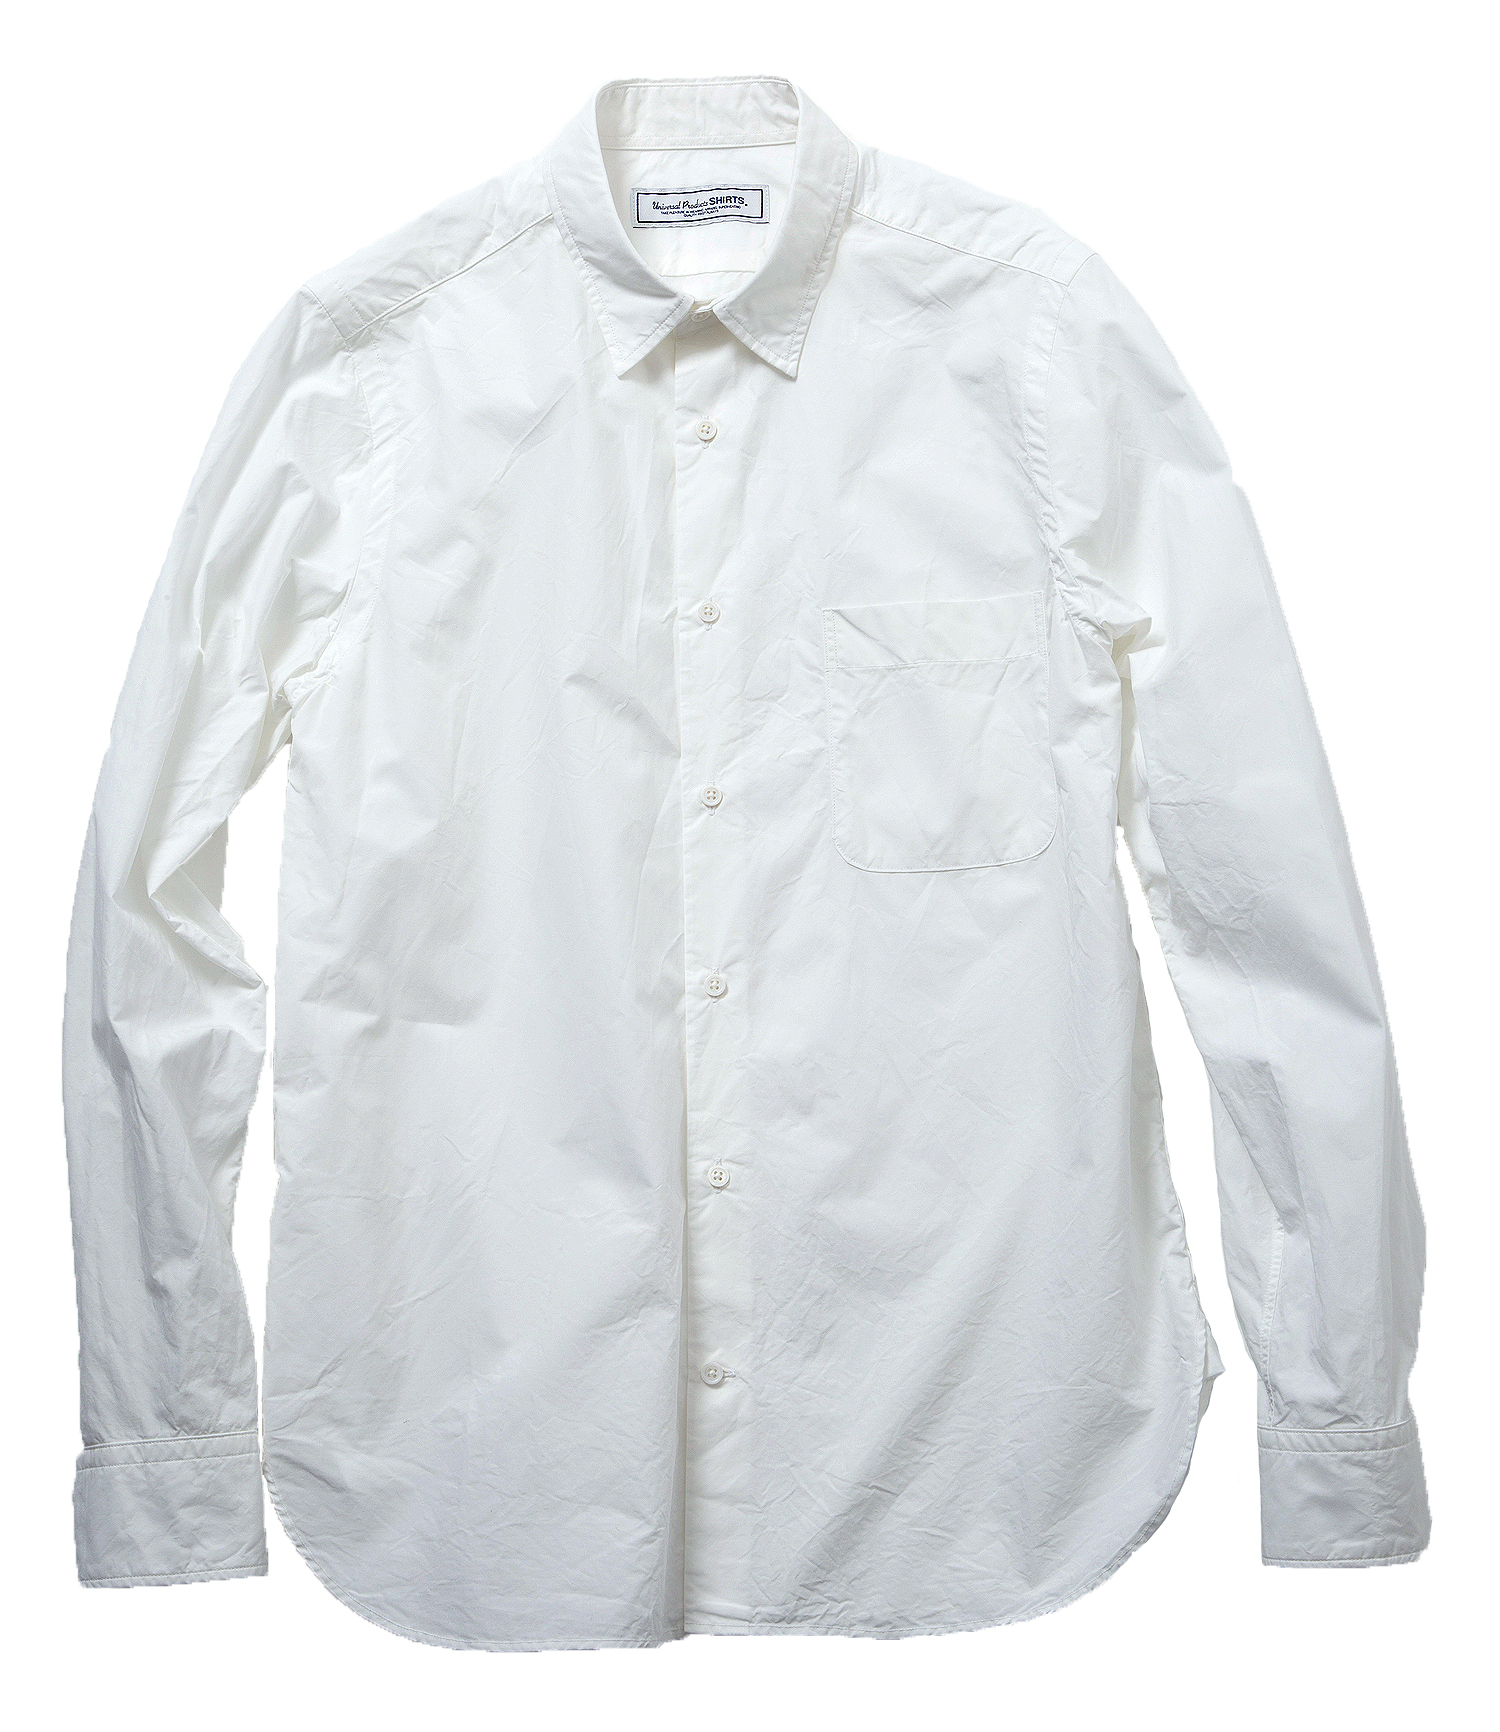 UNIVERSAL PRODUCTS REGULAR COLLAR SHIRTS